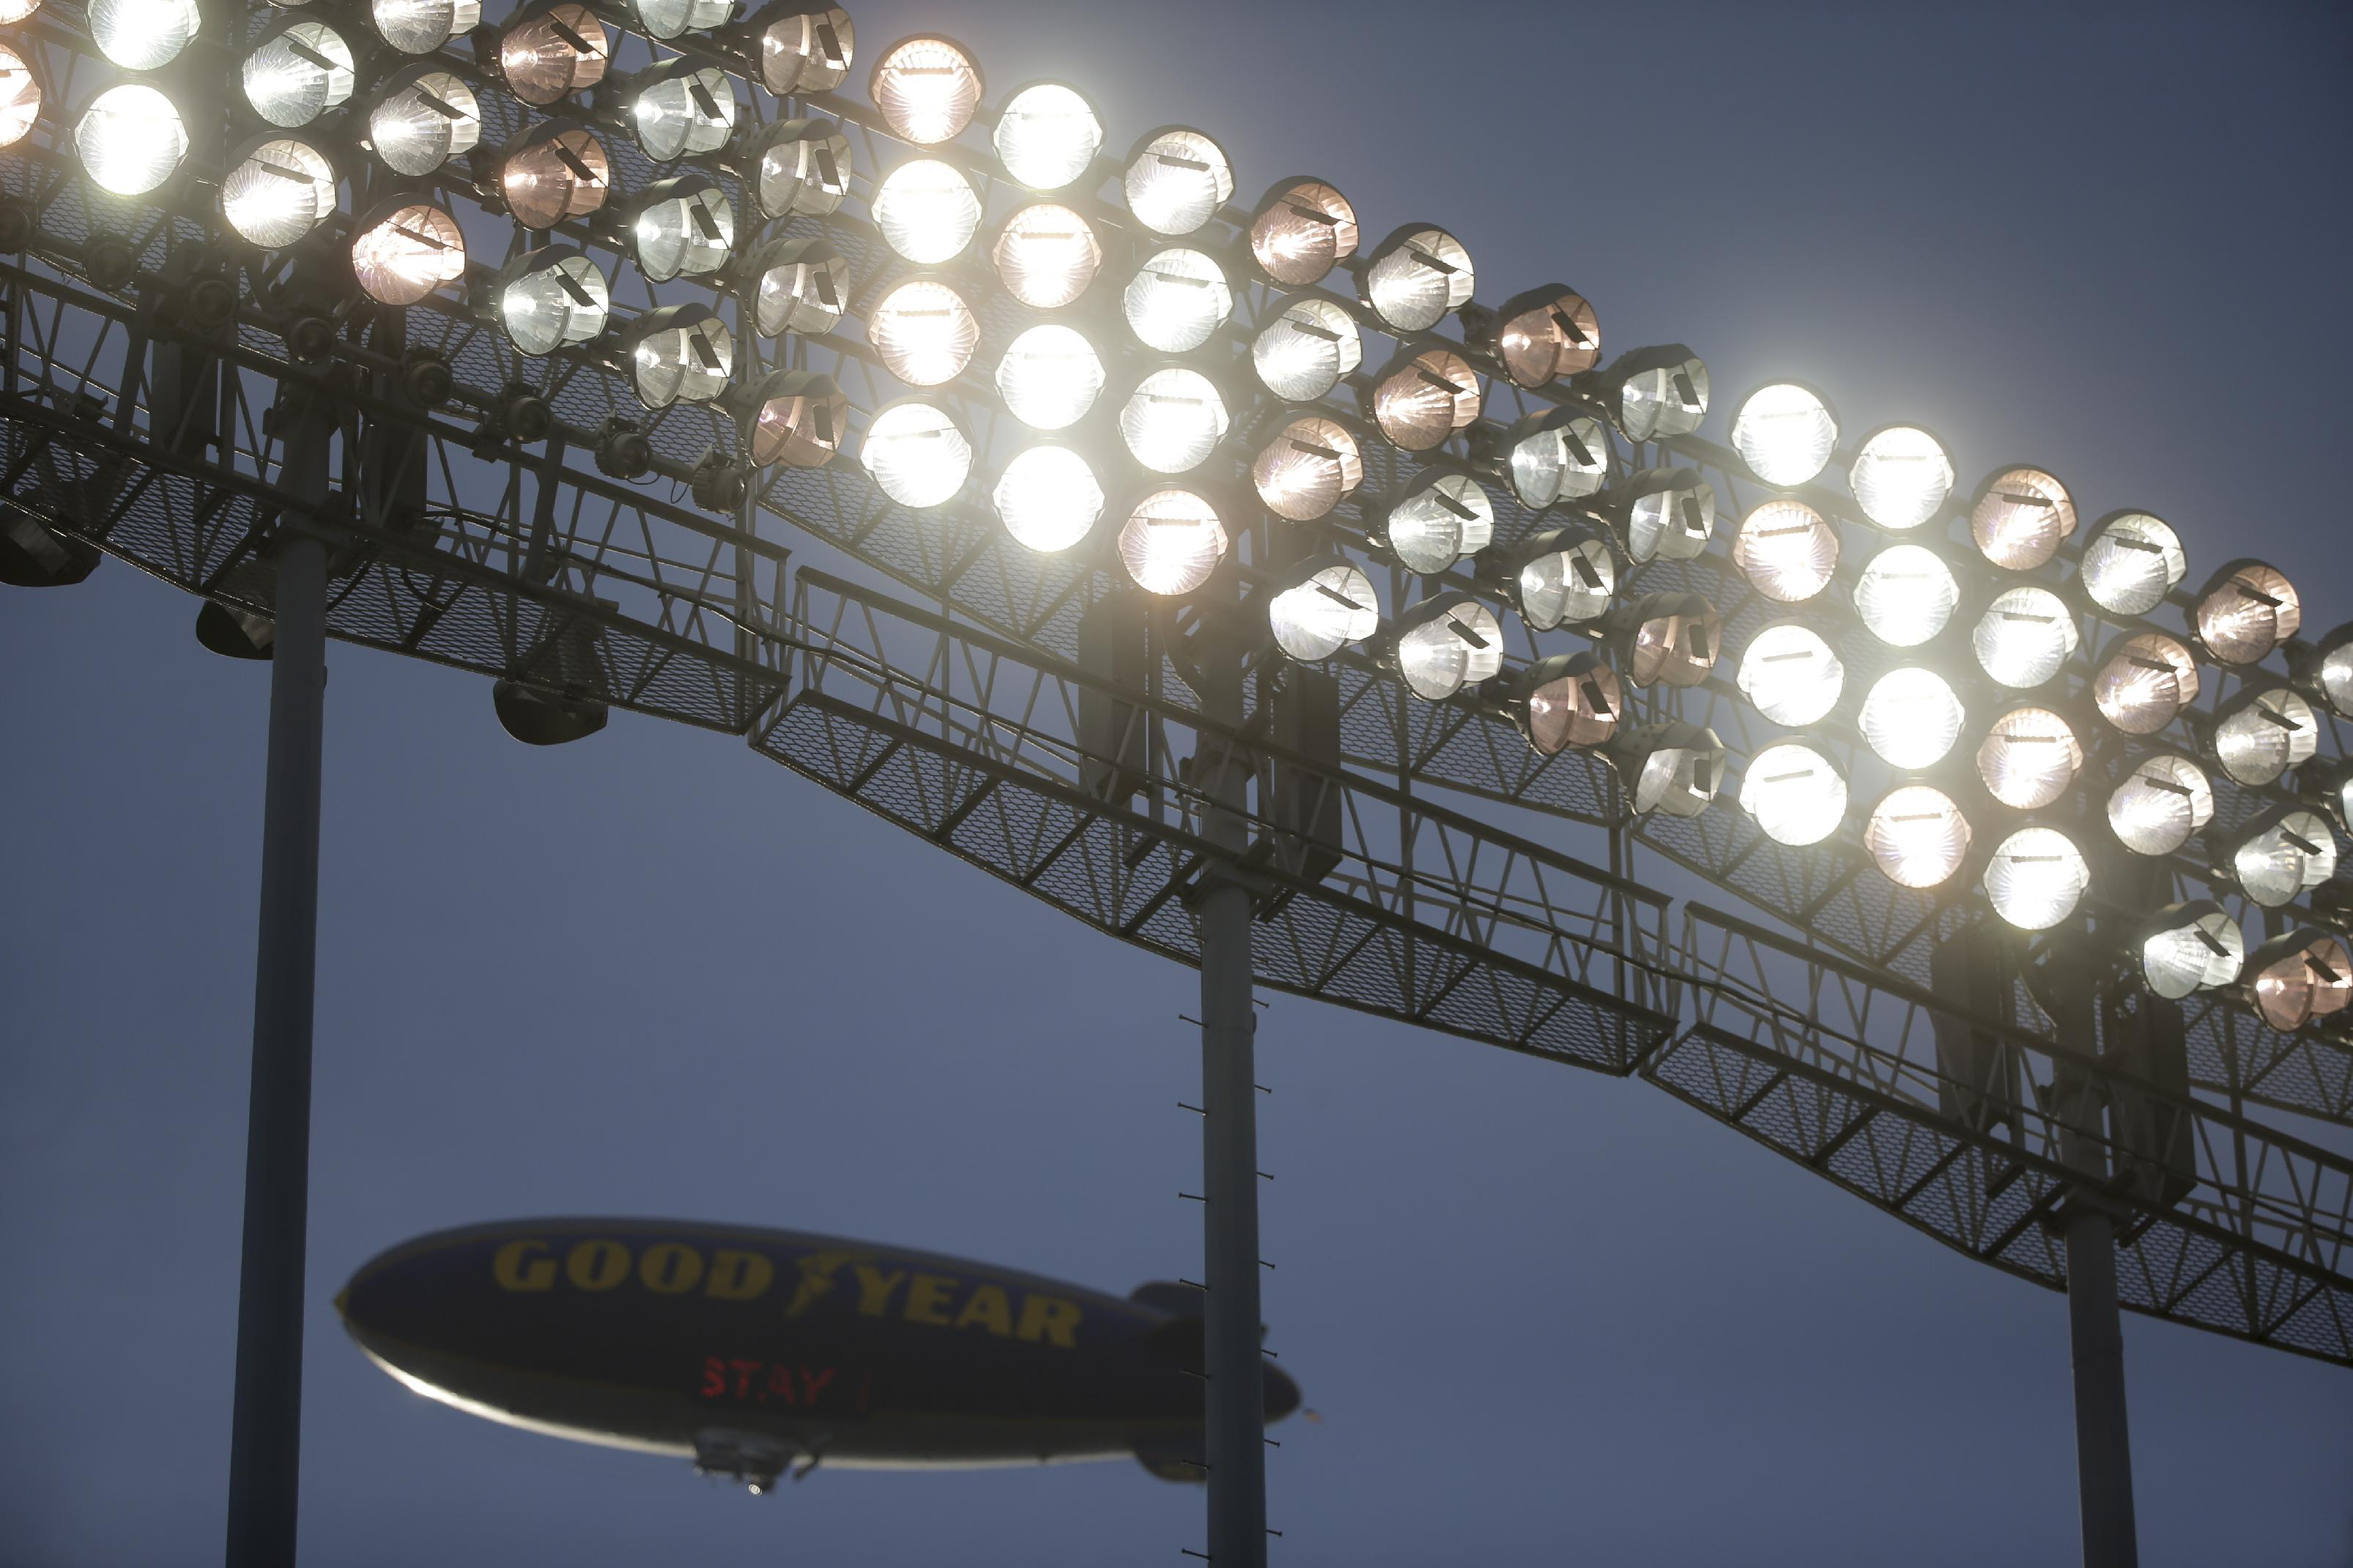 Goodyear retiring blimps, rolling out new cigar-shaped craft